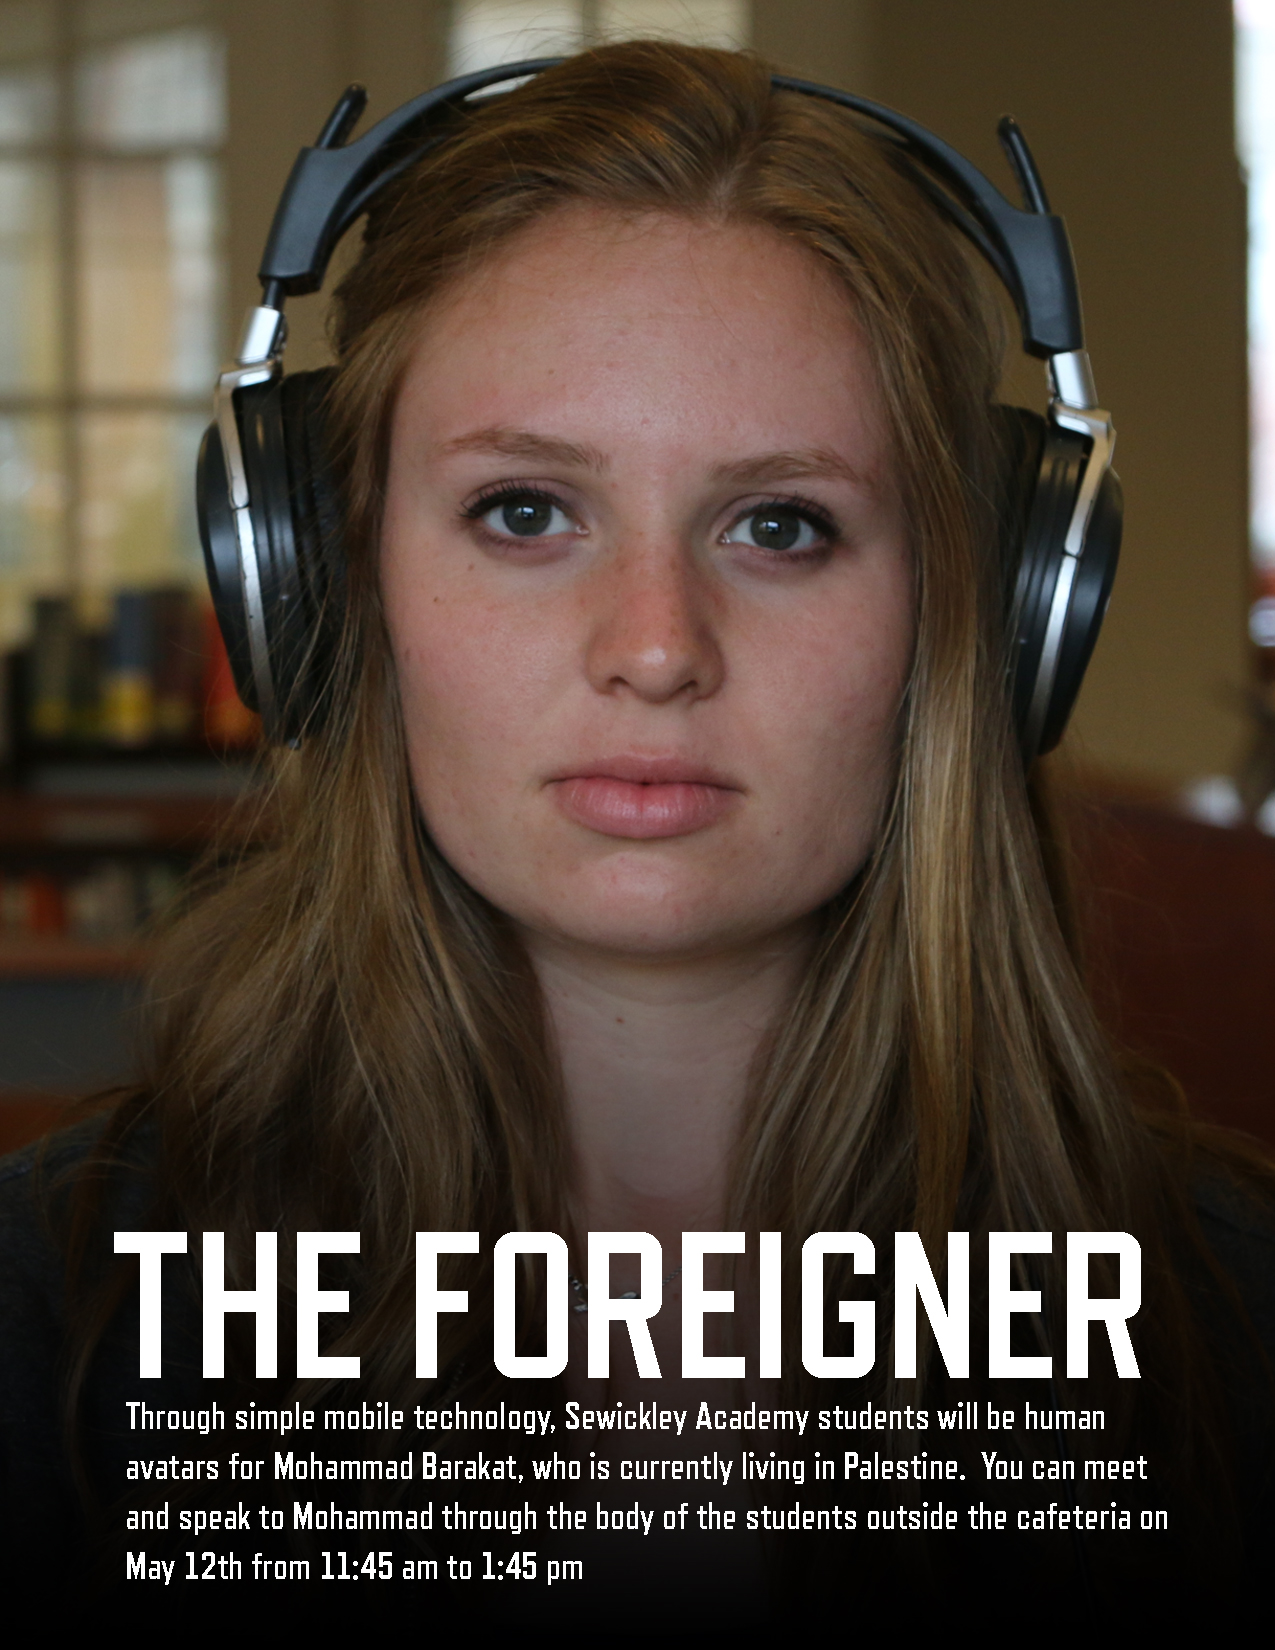 Foreigner-Poster-Sewickley_girl1_mohammad